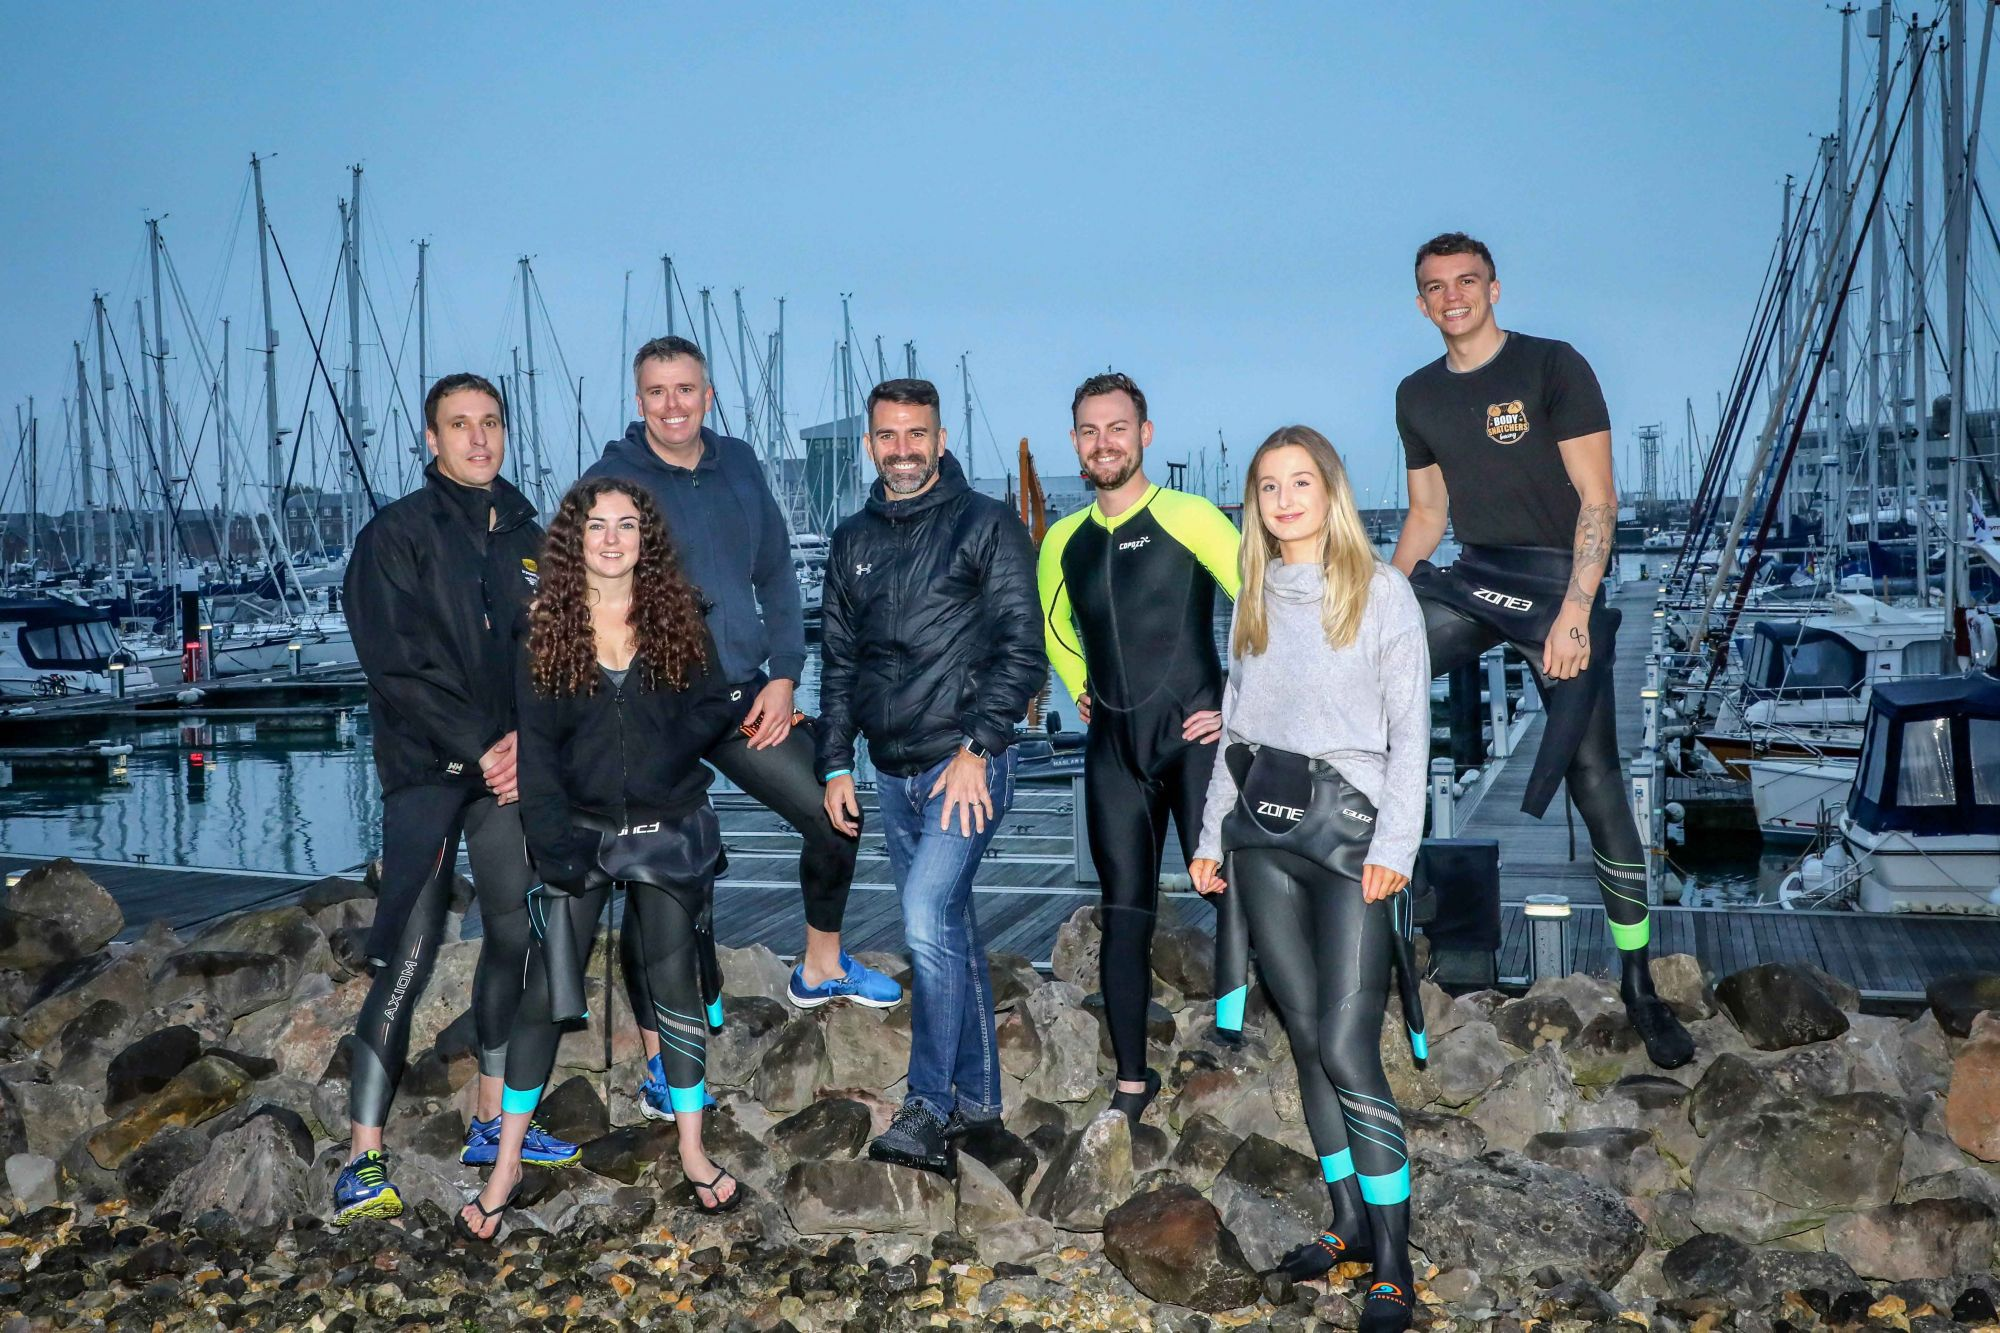 AT THE READY: Employees of Trant Engineering took part in a charity swim across the Solent from Gosport to Ryde, Isle of Wight, with a pep talk by Saints legend Francis Benali, centre. From left, James Henderson (Director – Process and Water), Jess Howe (Buyer), David Graham (Framework Manager), Terry Elstone (Consultant Commercial Manager), Louisa Davies (Quantity Surveyor) and James Stead (Project Engineer).